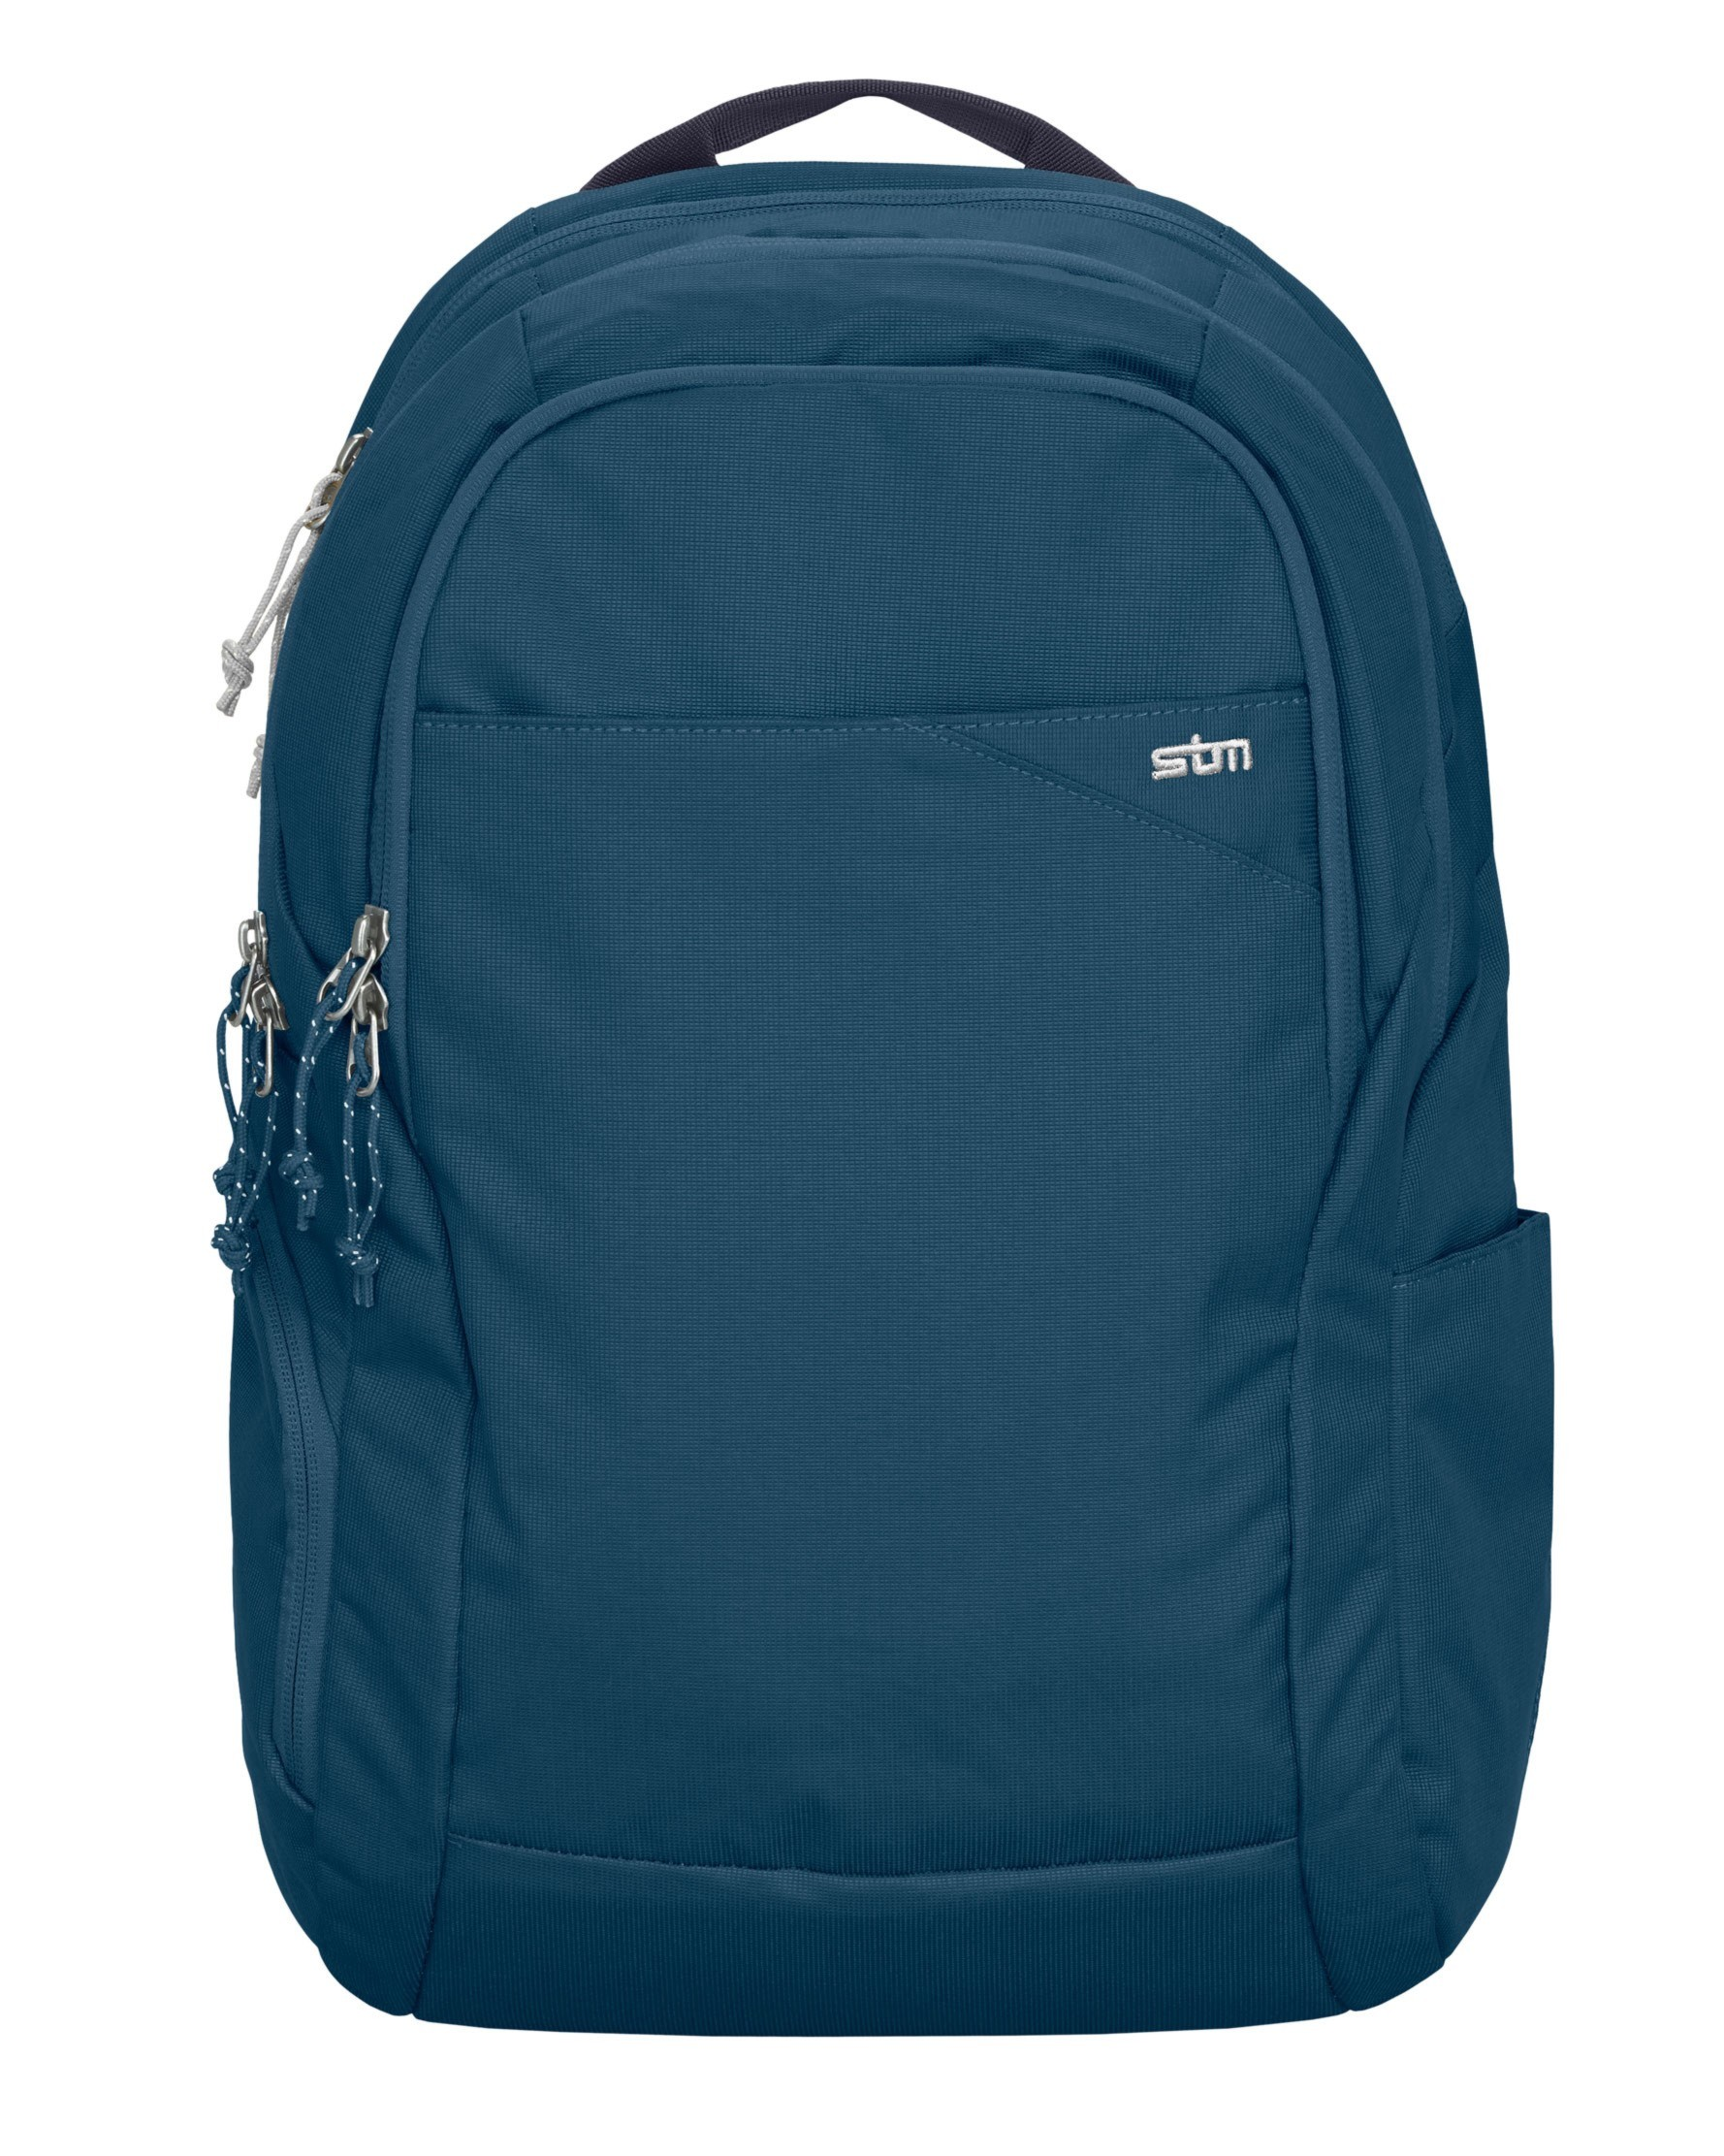 "תיק גב STM Haven 15"" Laptop Backpack"